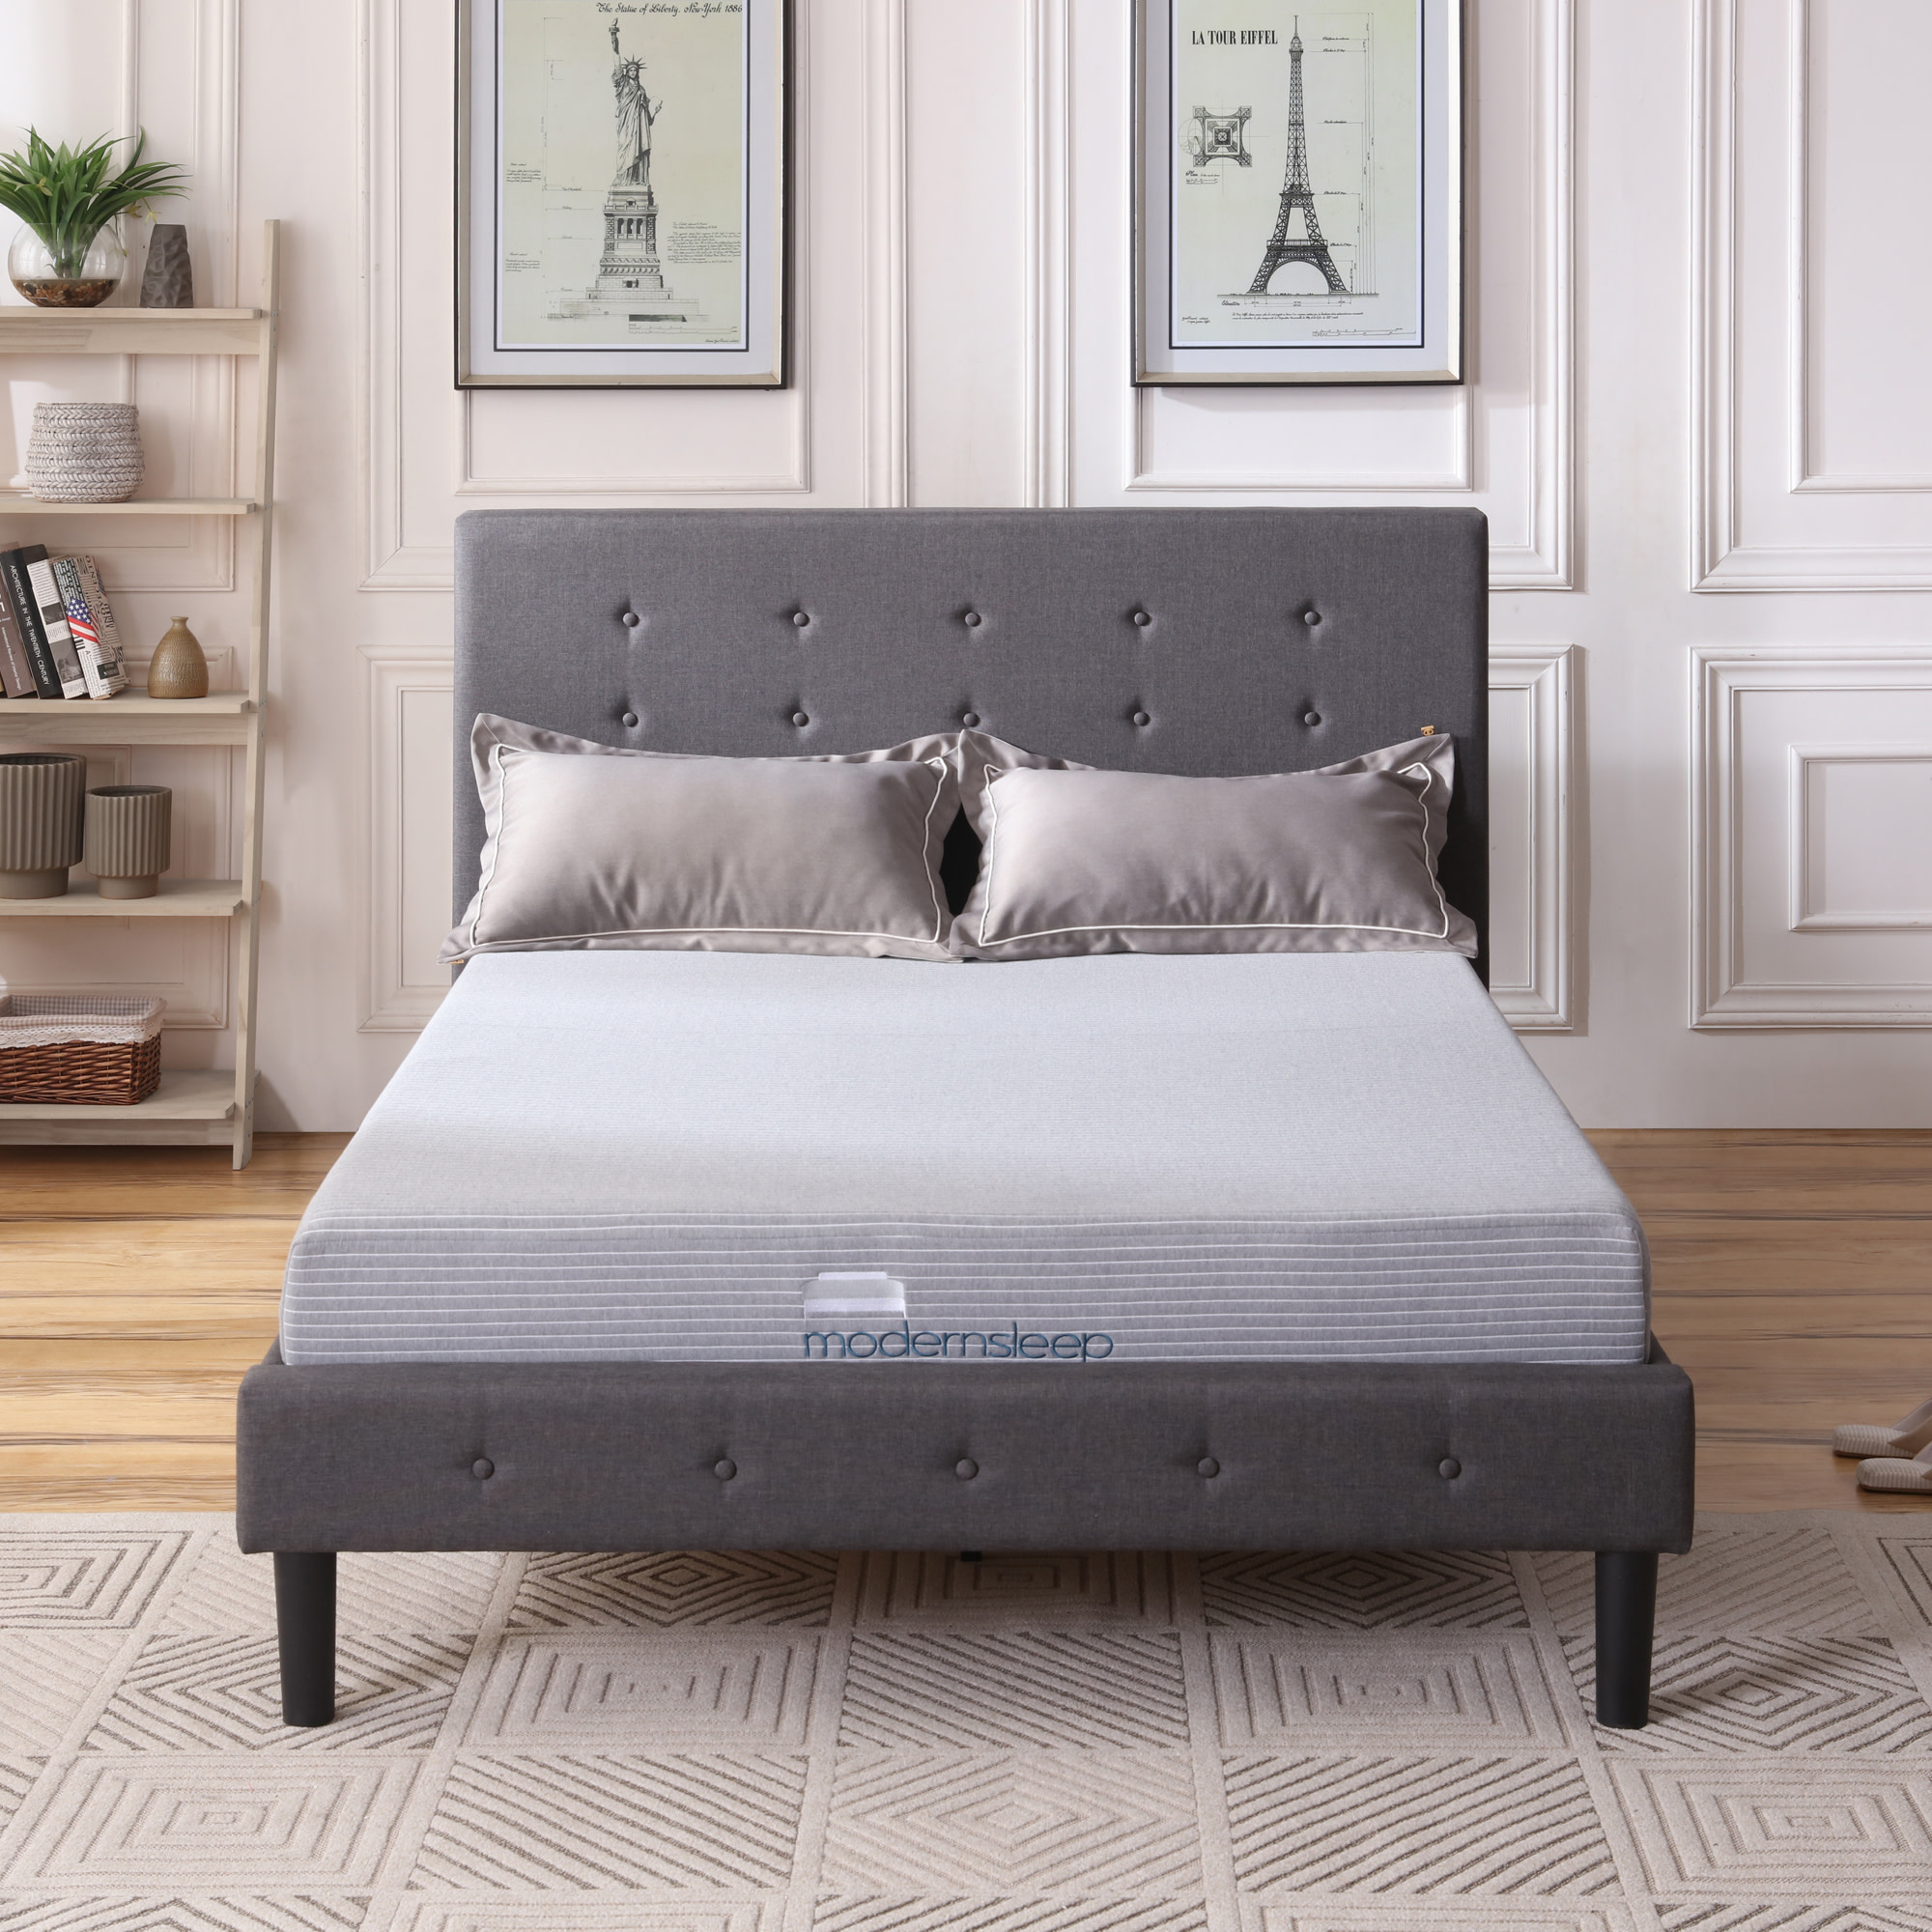 Modern Sleep Gel Memory Foam 8-Inch Mattress, Multiple Sizes